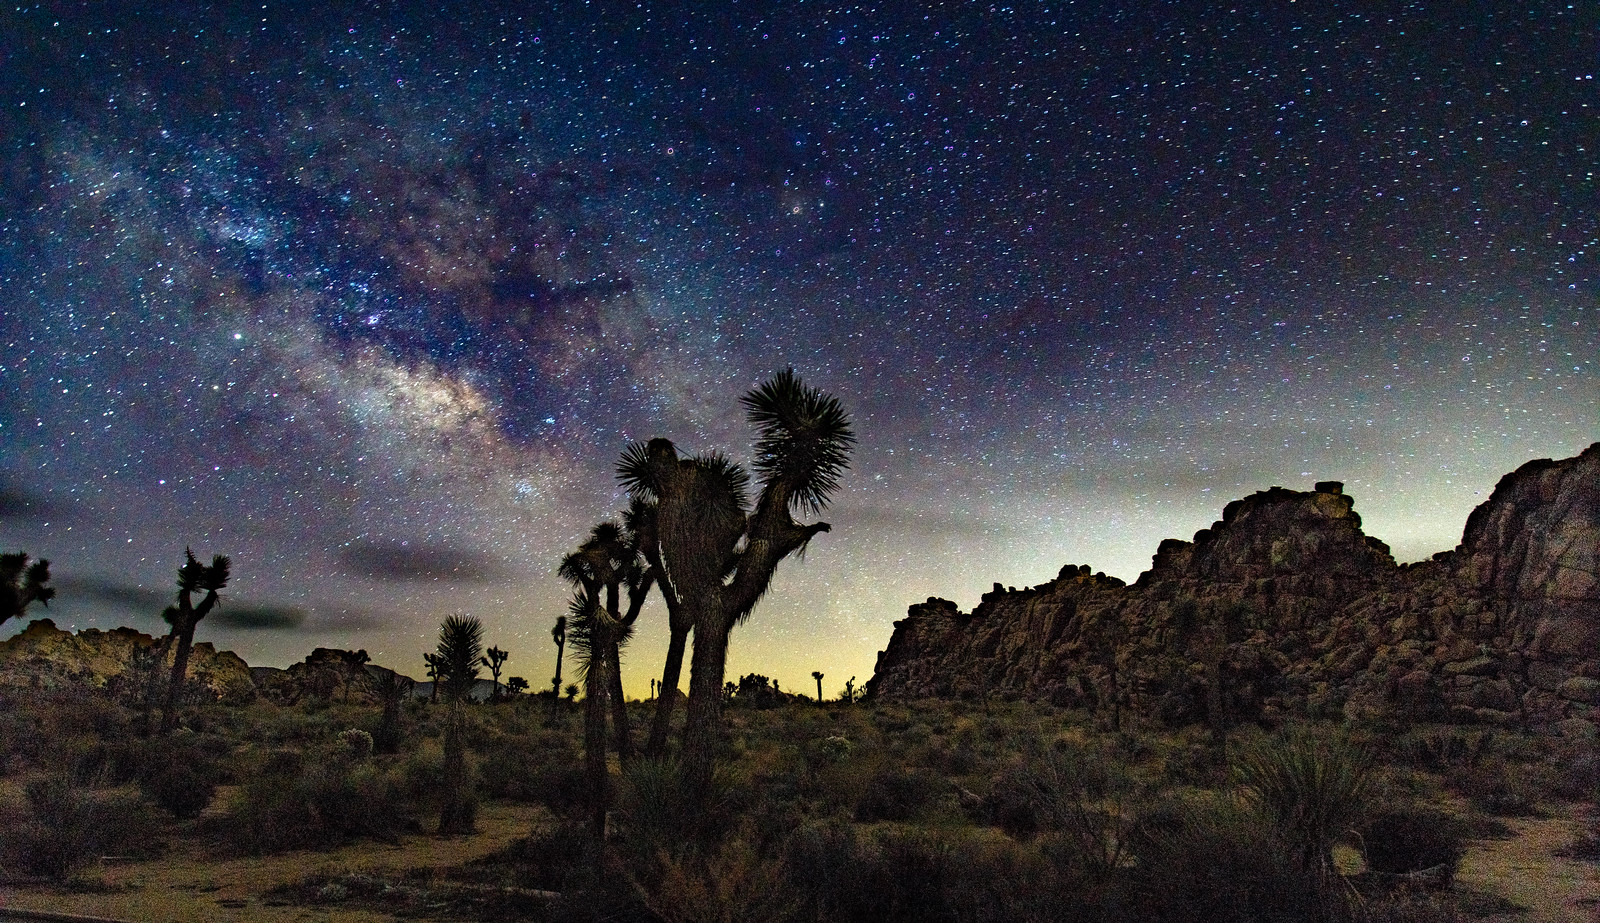 Night sky @ Joshua Tree #2